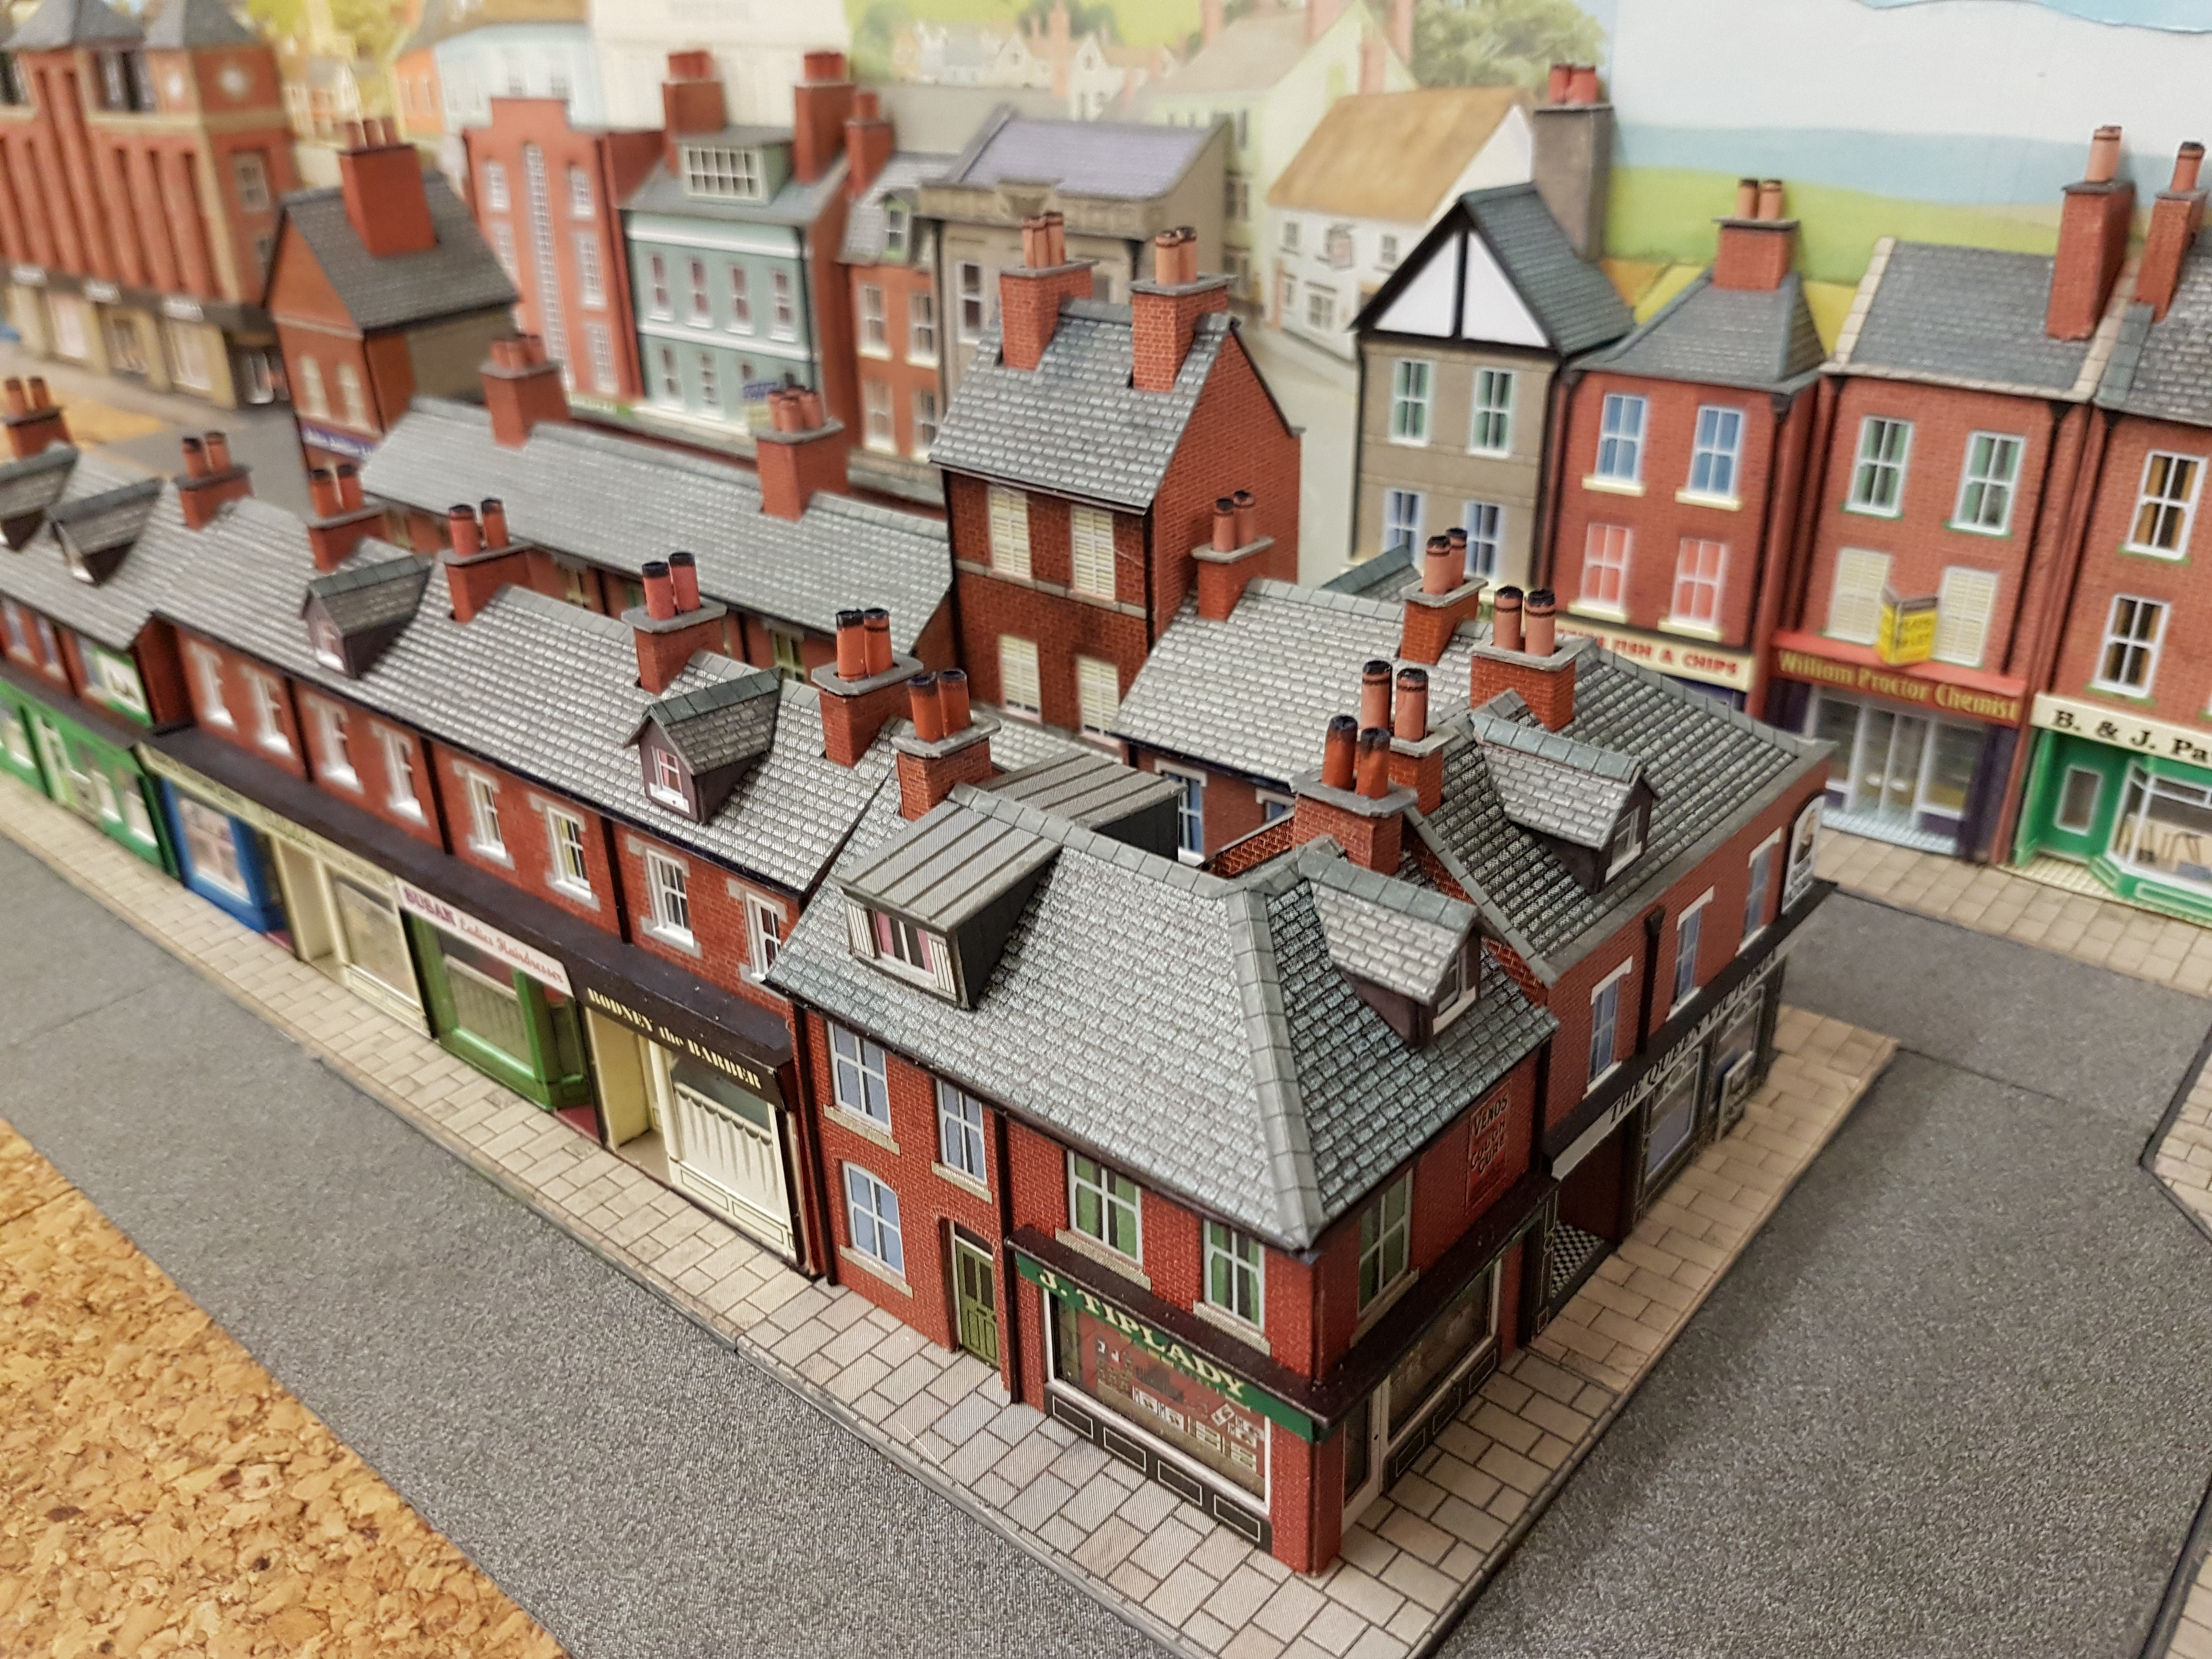 The new row of shops and pubs fitted to the N gauge layout